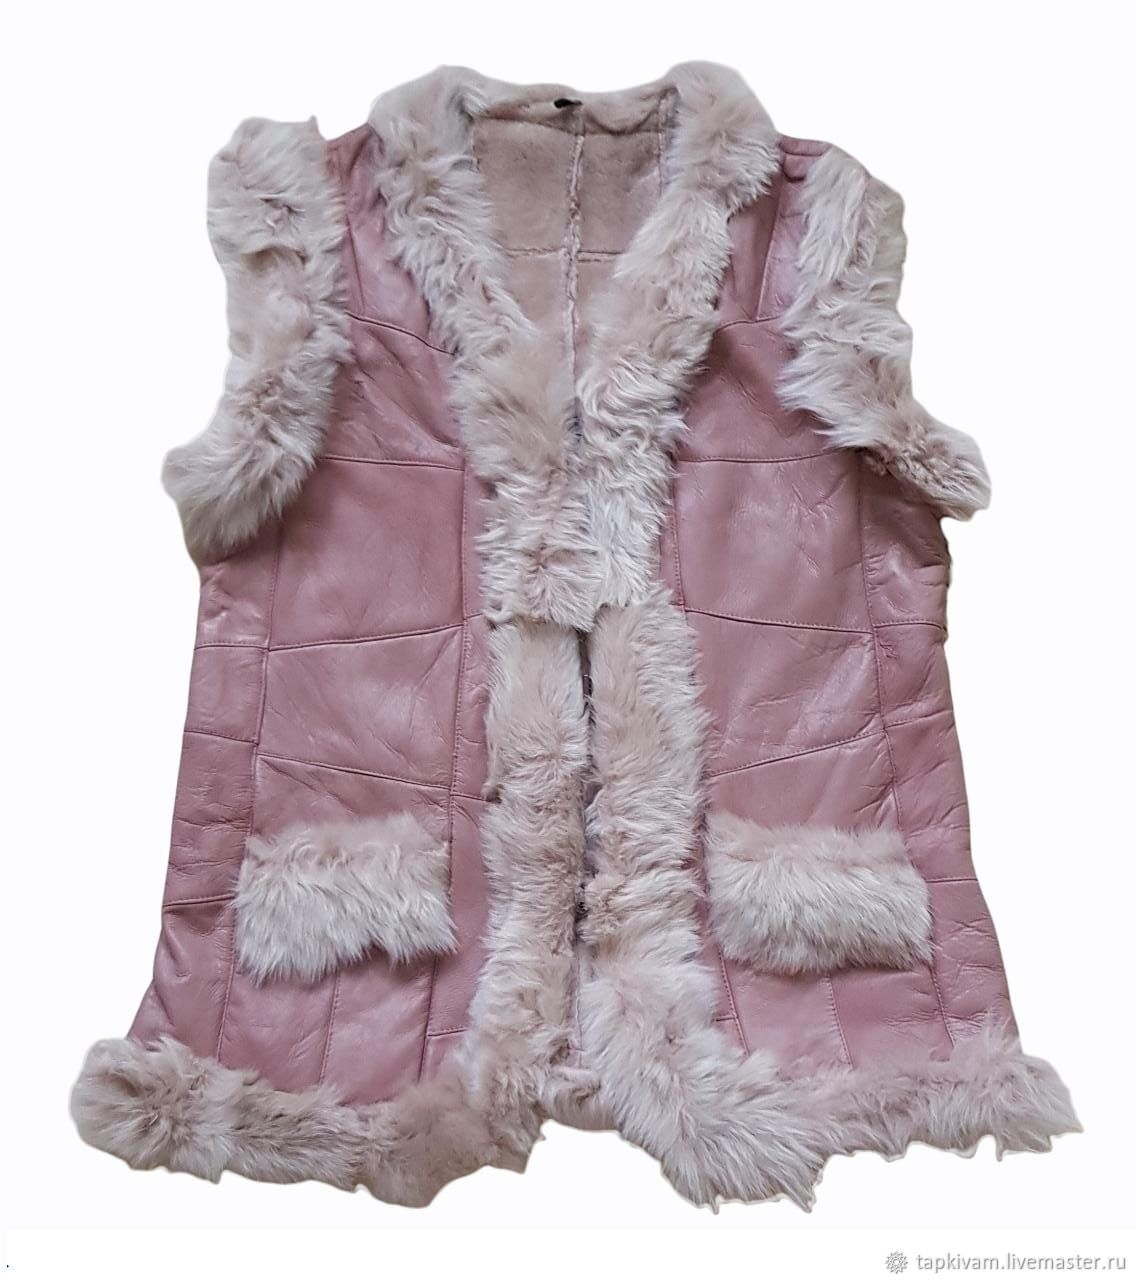 Women's vest made of sheepskin and tuscany pink, Vests, Moscow,  Фото №1